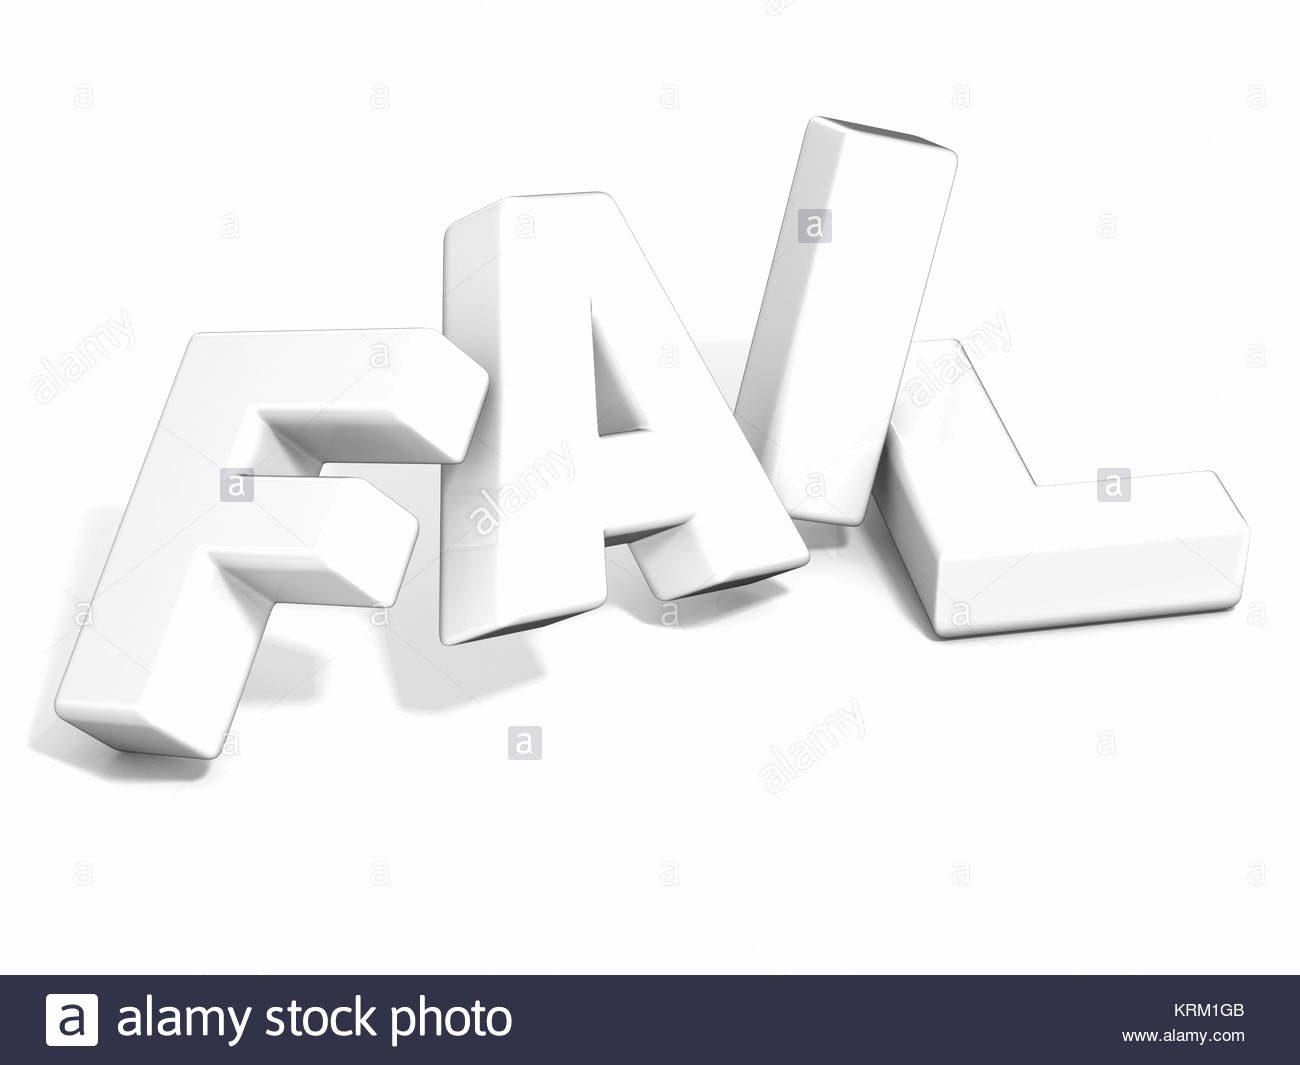 Failed Background Check Letter Template Inspirational Malfunction Cut Out Stock & Alamy